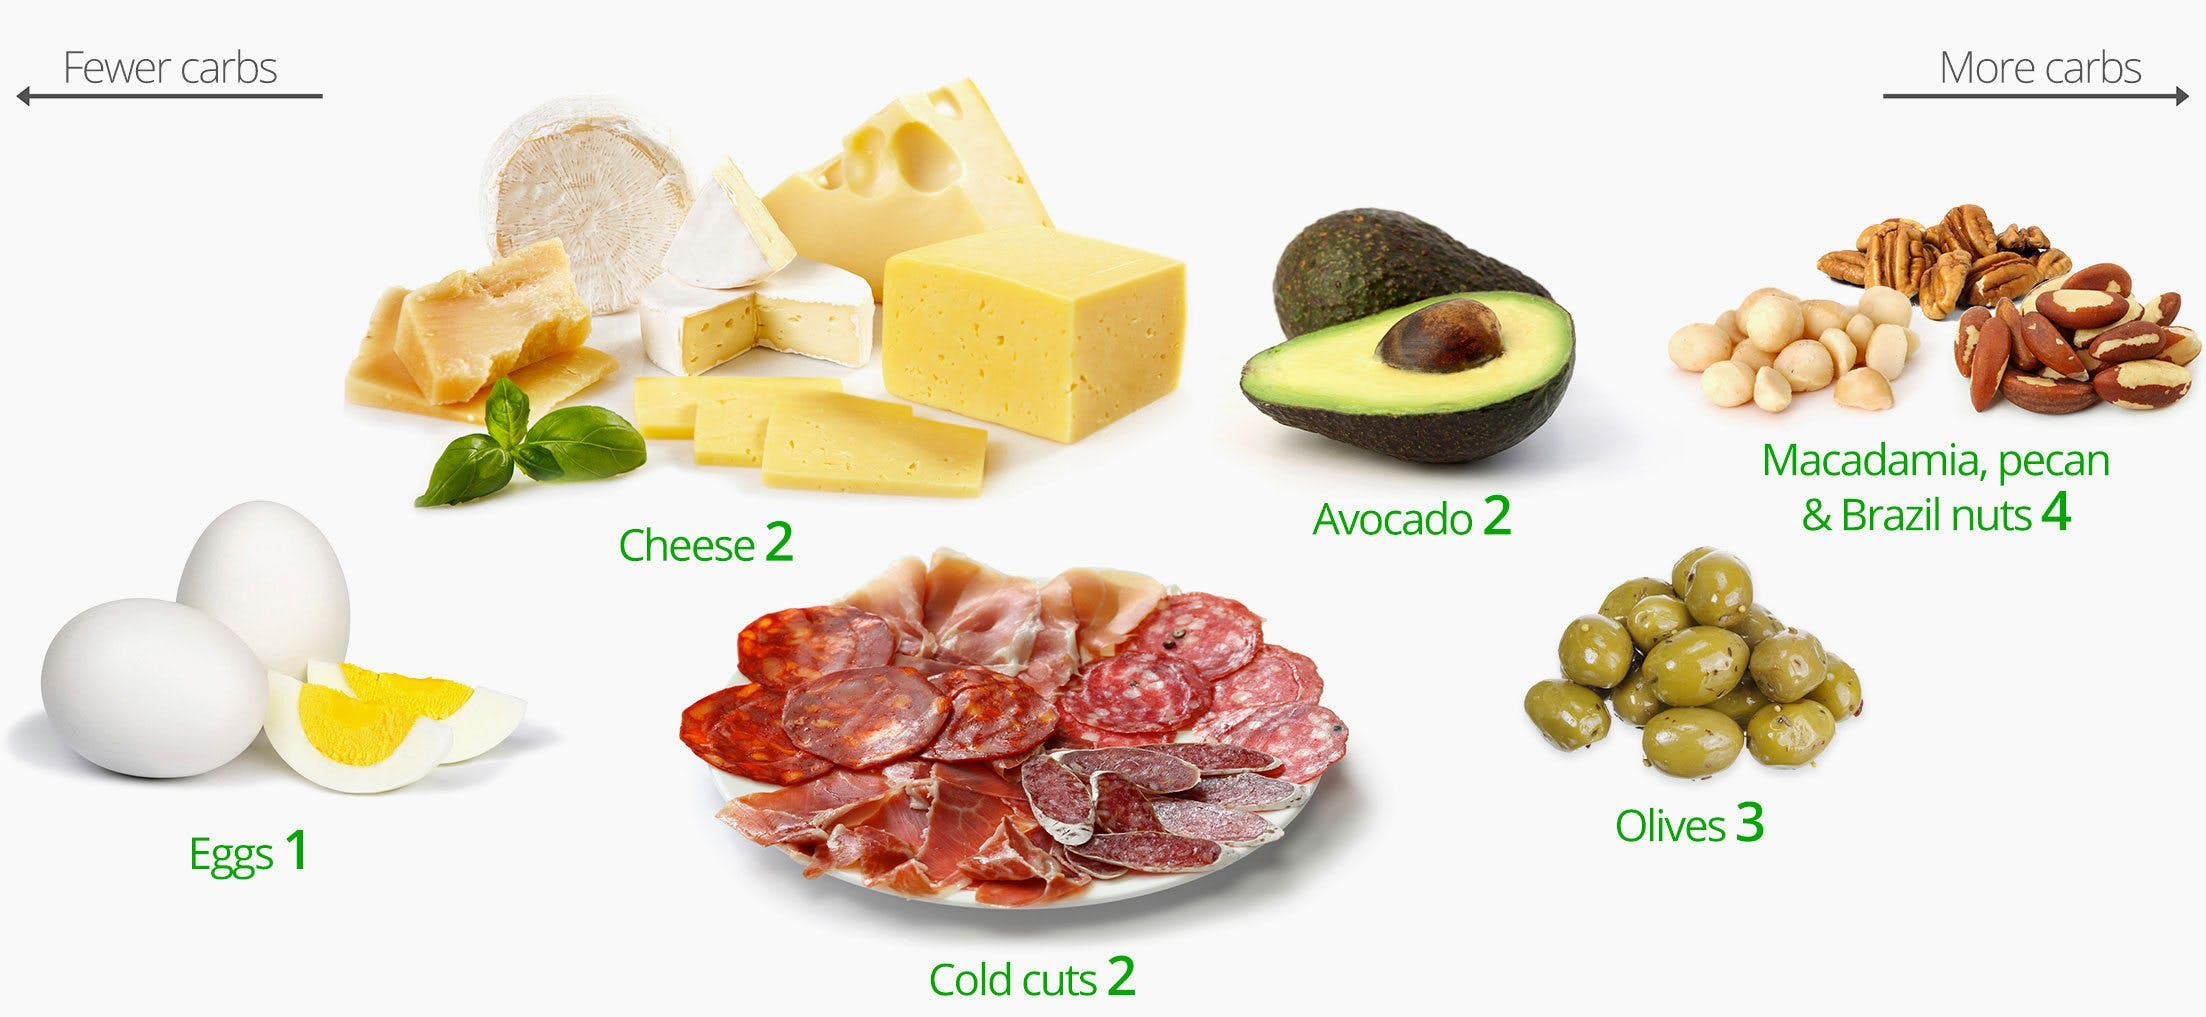 Low-carb snacks